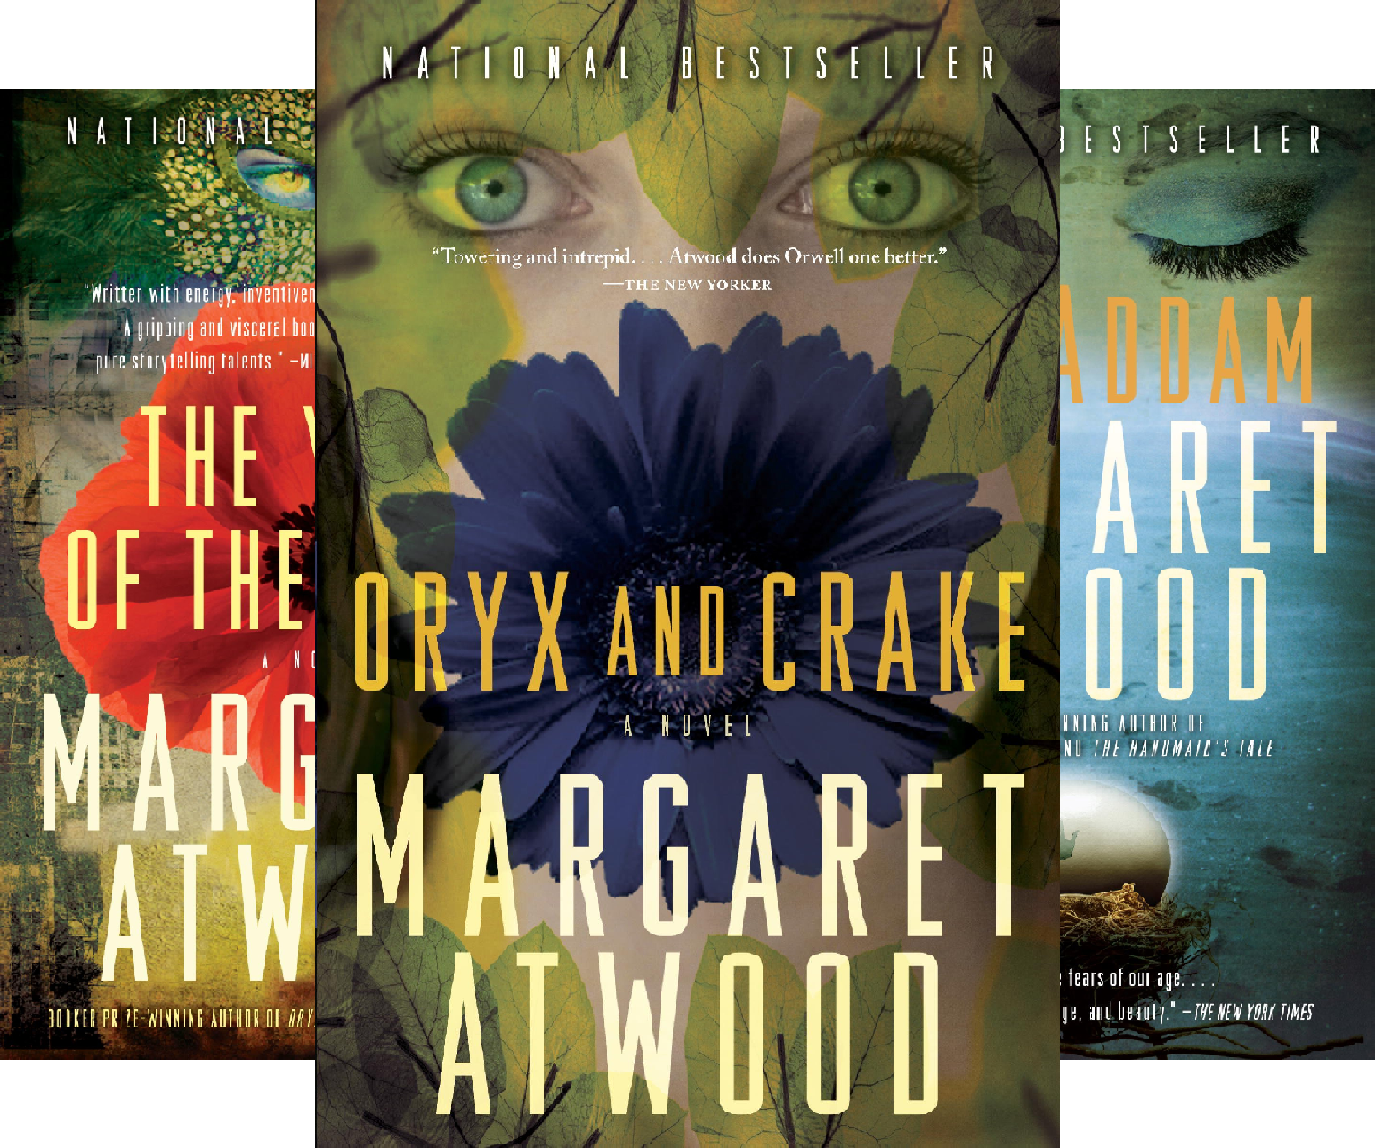 MaddAddam Trilogy (3 Book Series) (Margaret Atwood Year Of The Flood Trilogy)